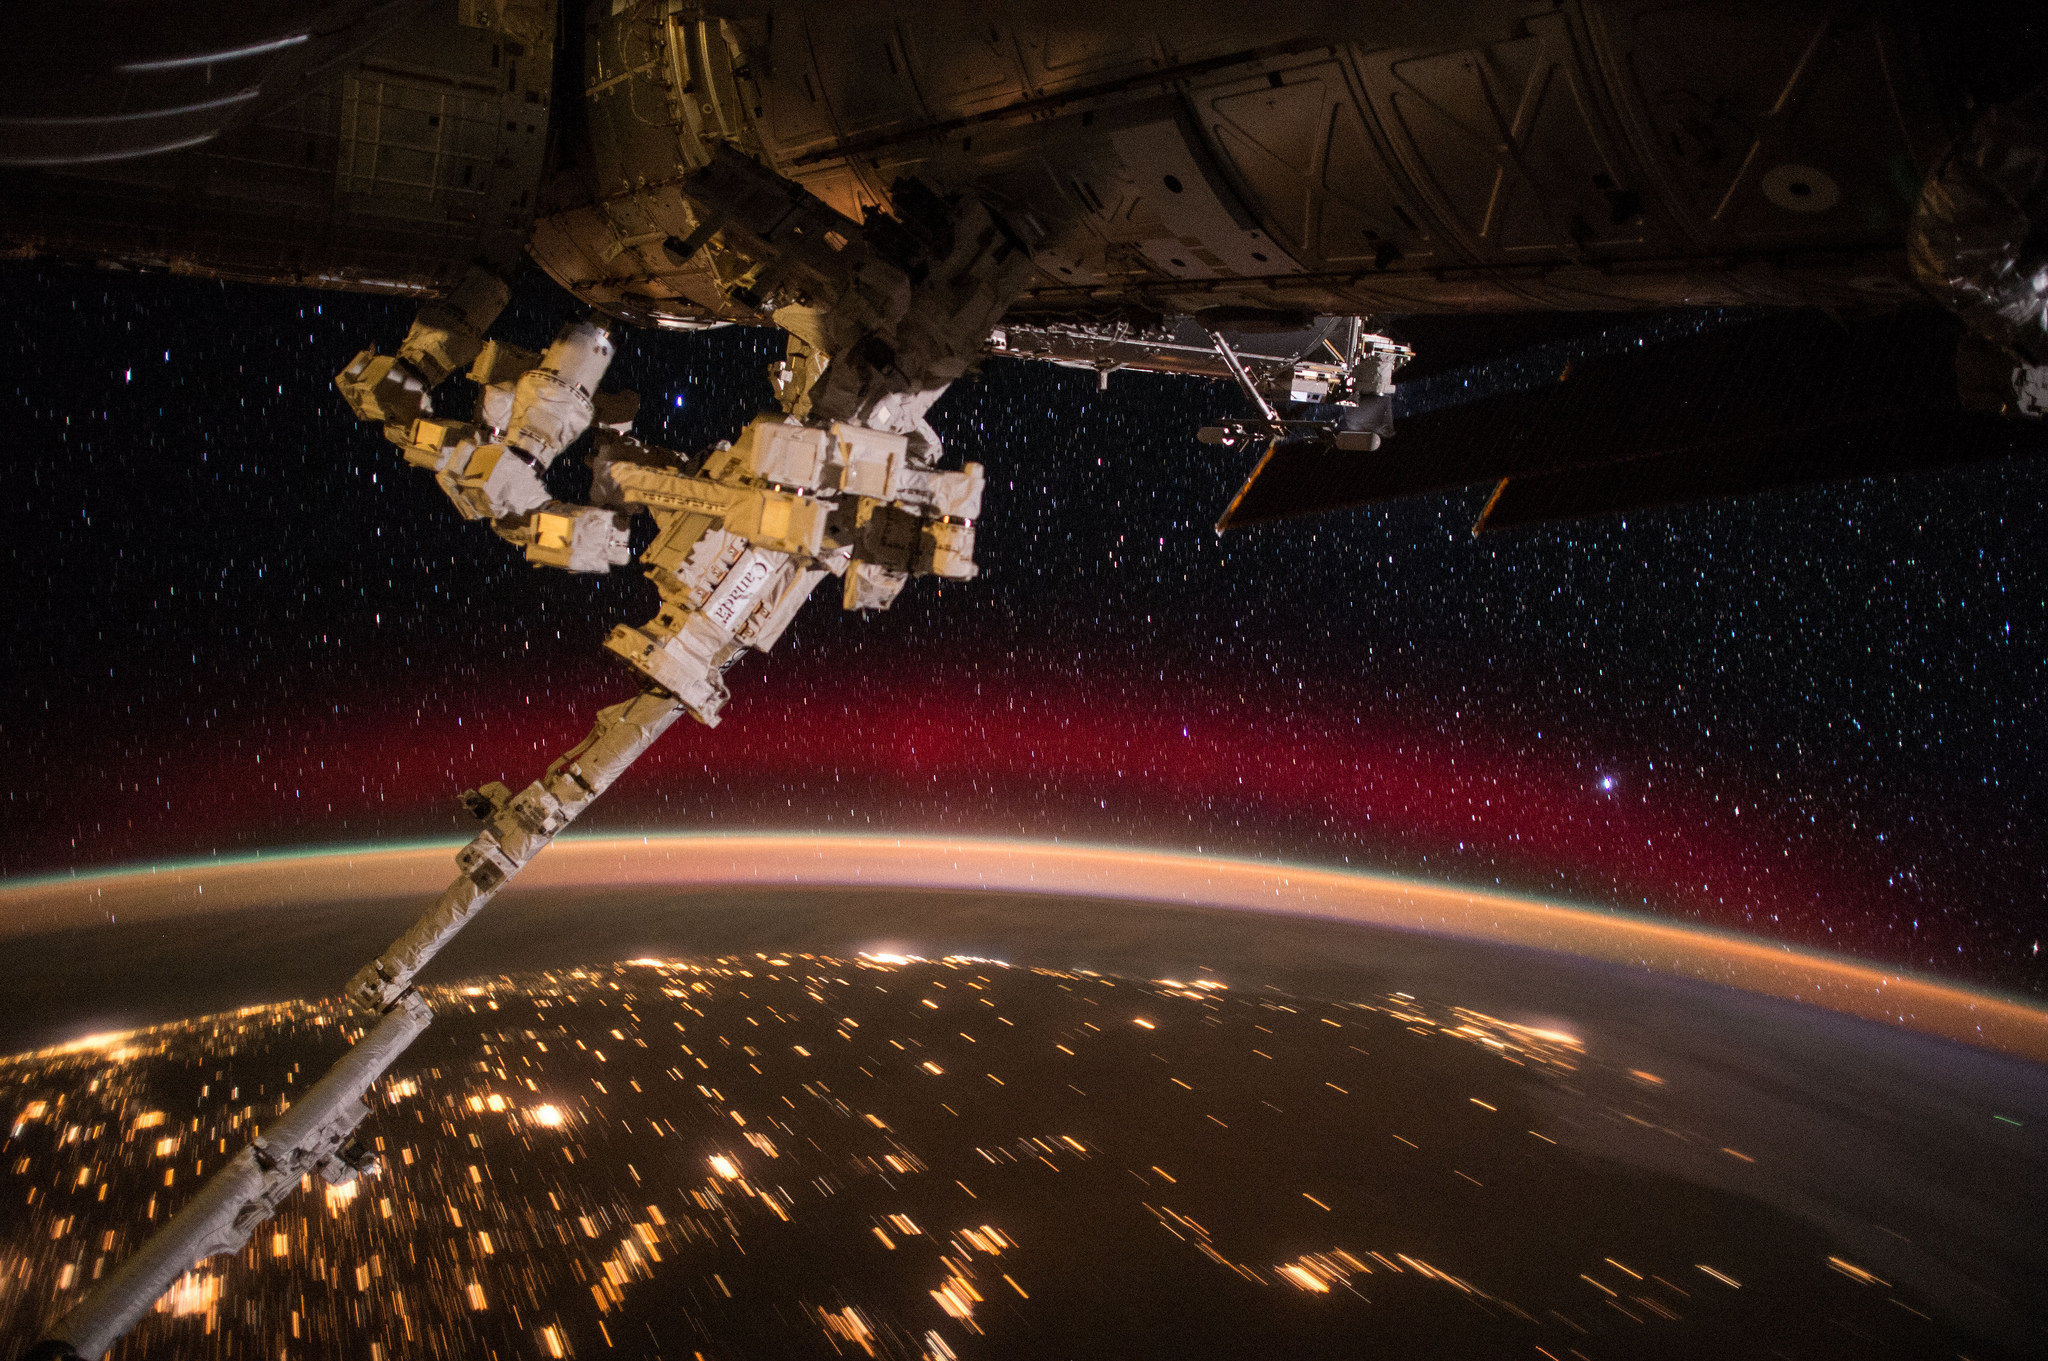 International Space Station crew members captured this view of the station's remote controlled Canadarm protruding from the orbiting laboratory, with Earth's colorful aurora, sparkling city lights and a rising sun over a background of stars.